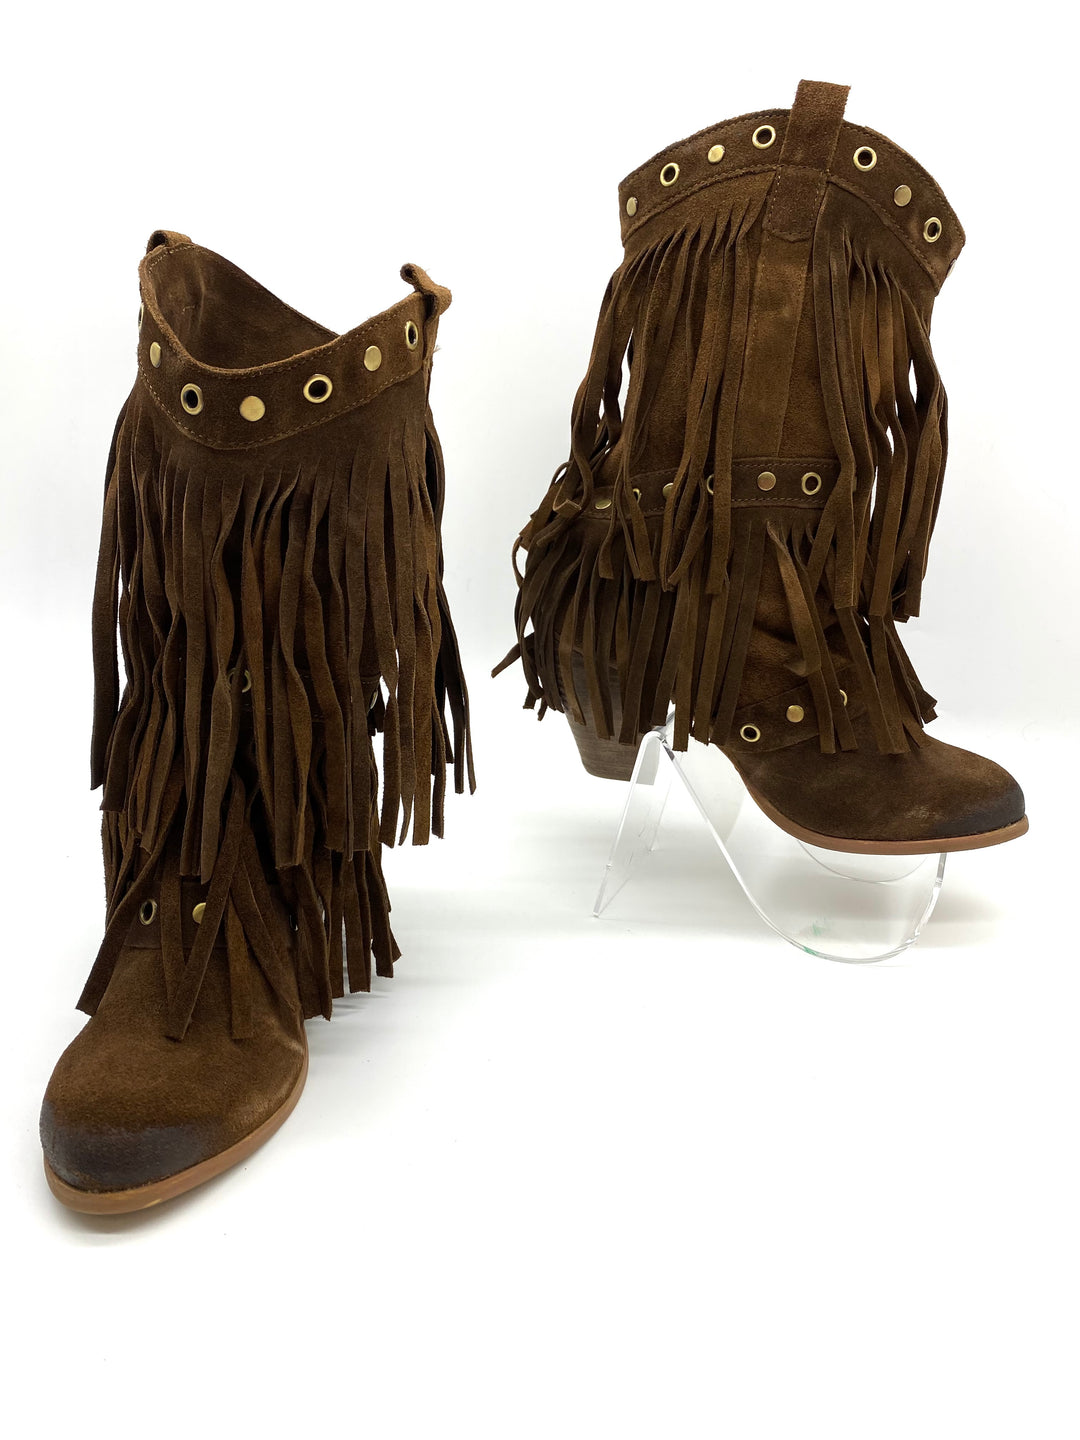 Primary Photo - BRAND: NAUGHTY MONKEY <BR>STYLE: BOOTS ANKLE <BR>COLOR: BROWN <BR>SIZE: 7.5 <BR>SKU: 262-26275-68411